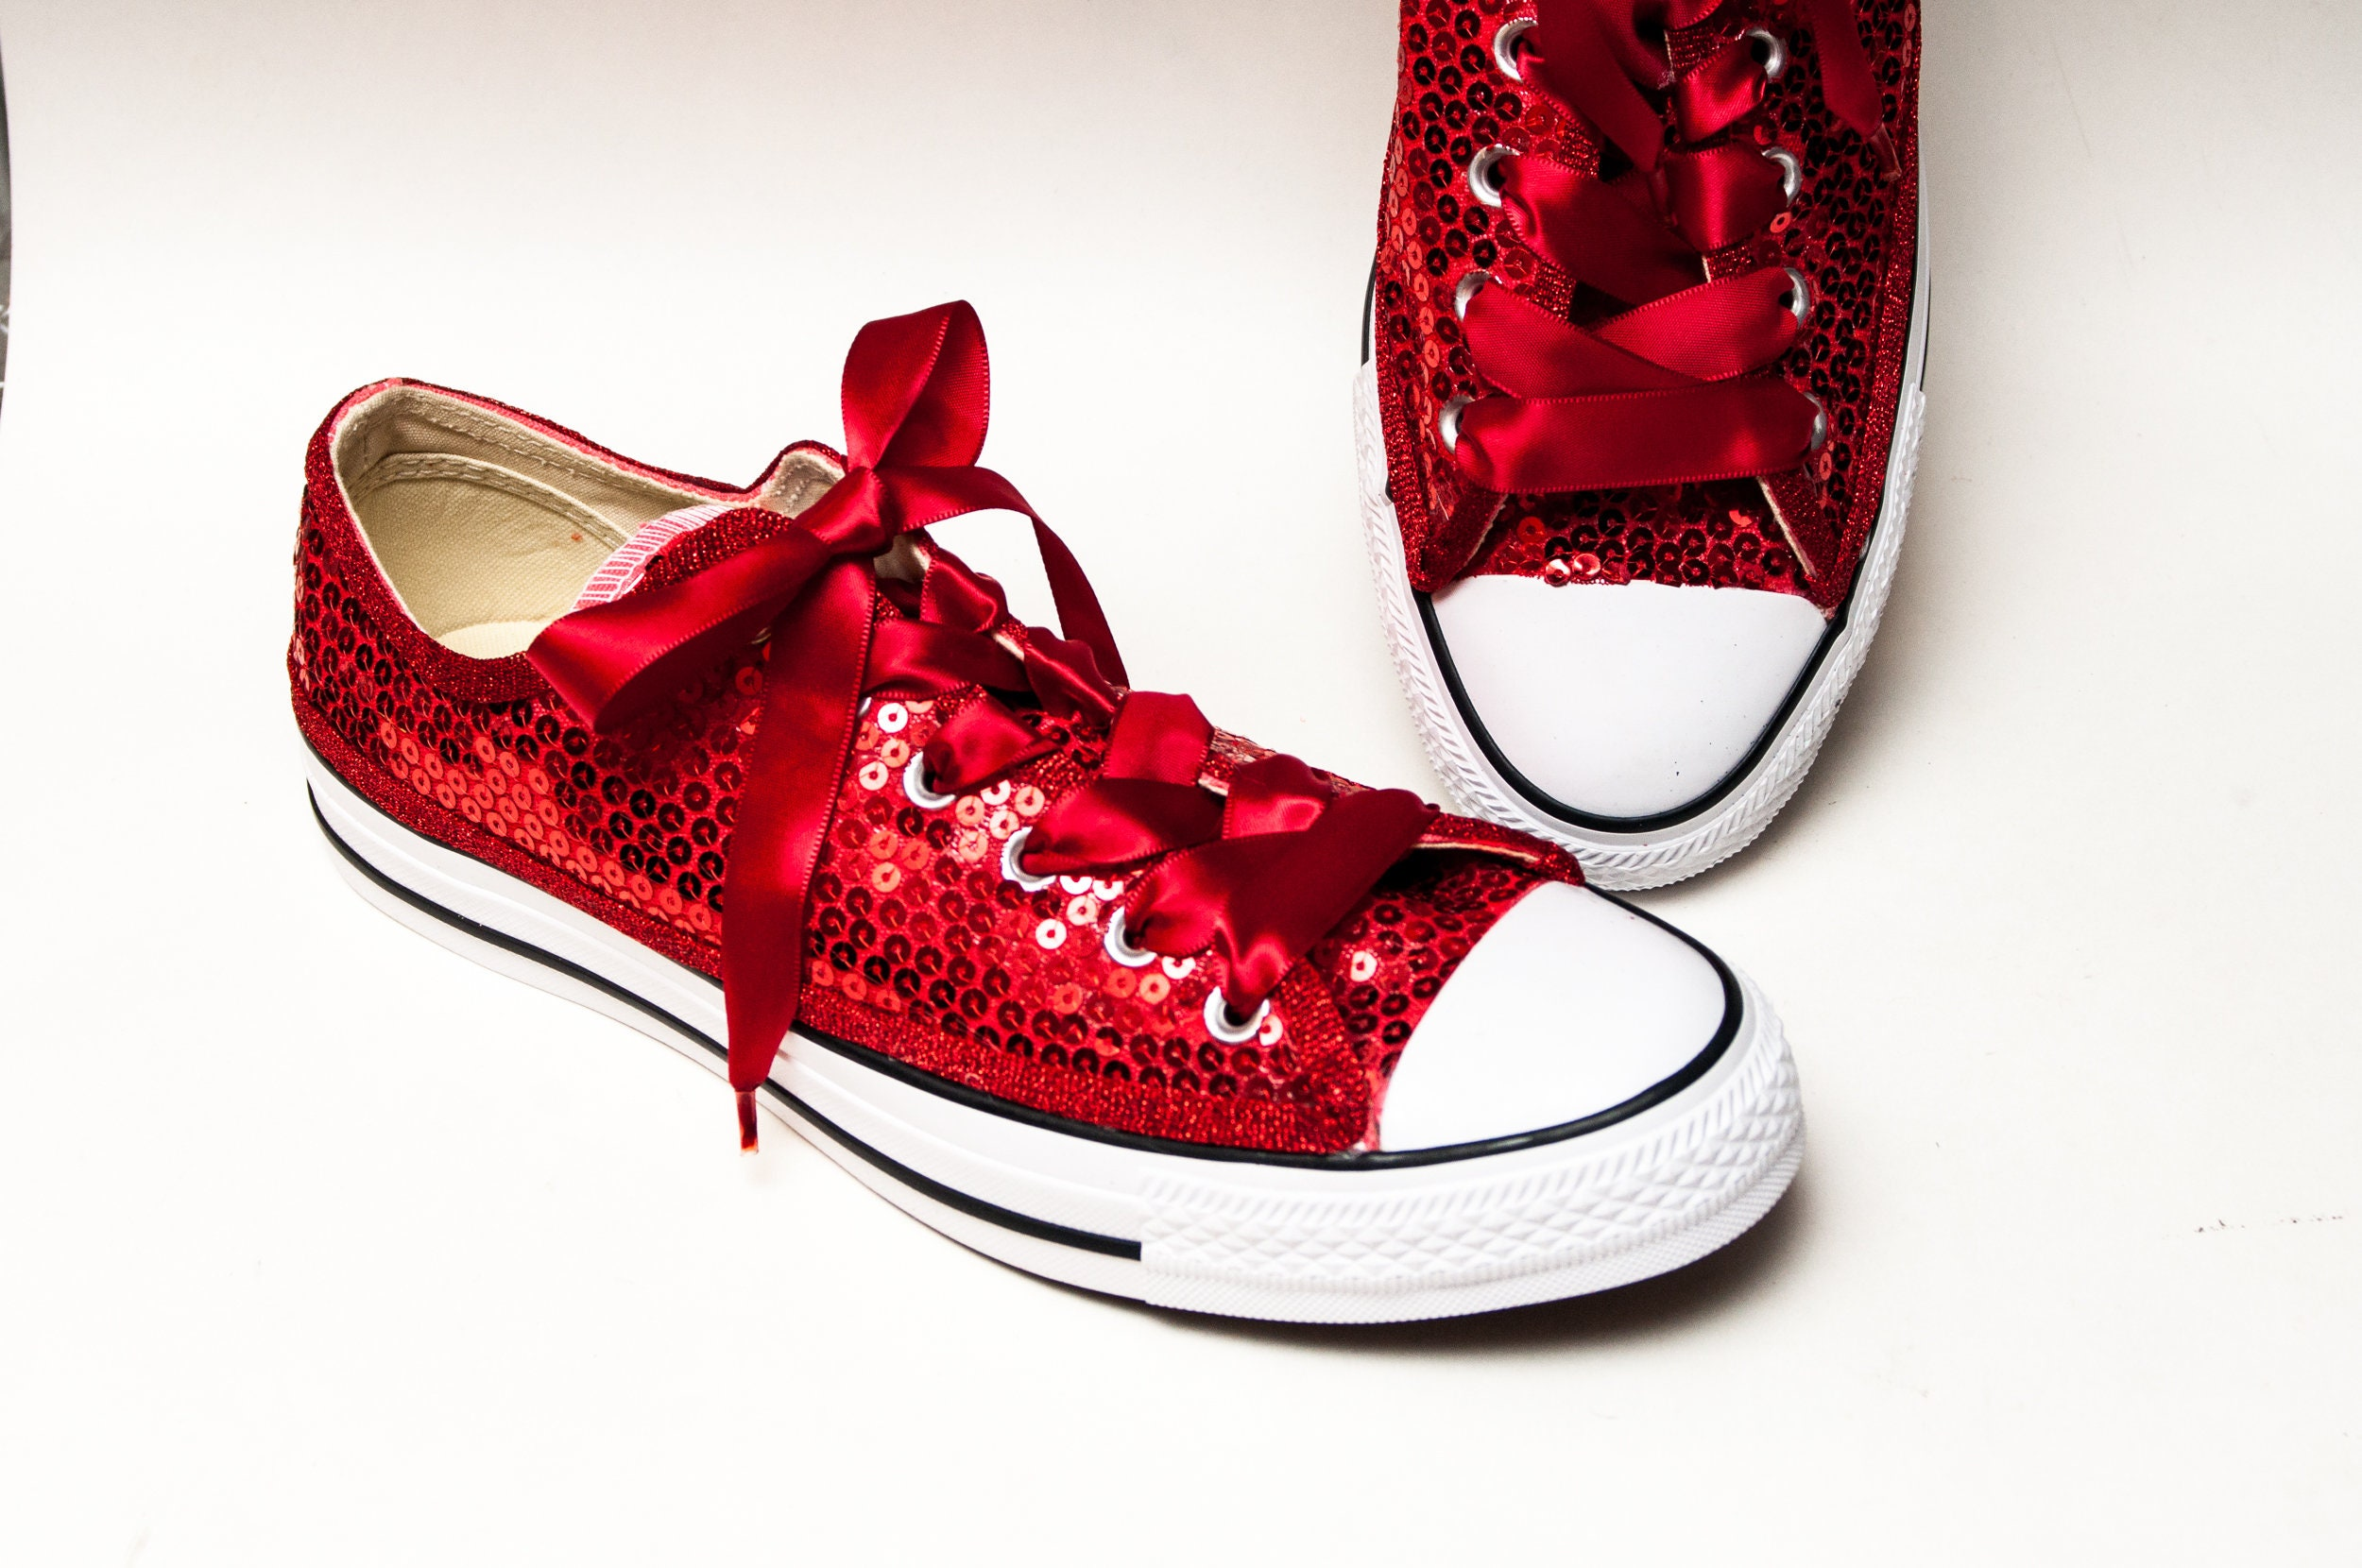 50c68977ce5a Bridal Favorite Red Sequin Converse® Low Top Sneakers | Etsy